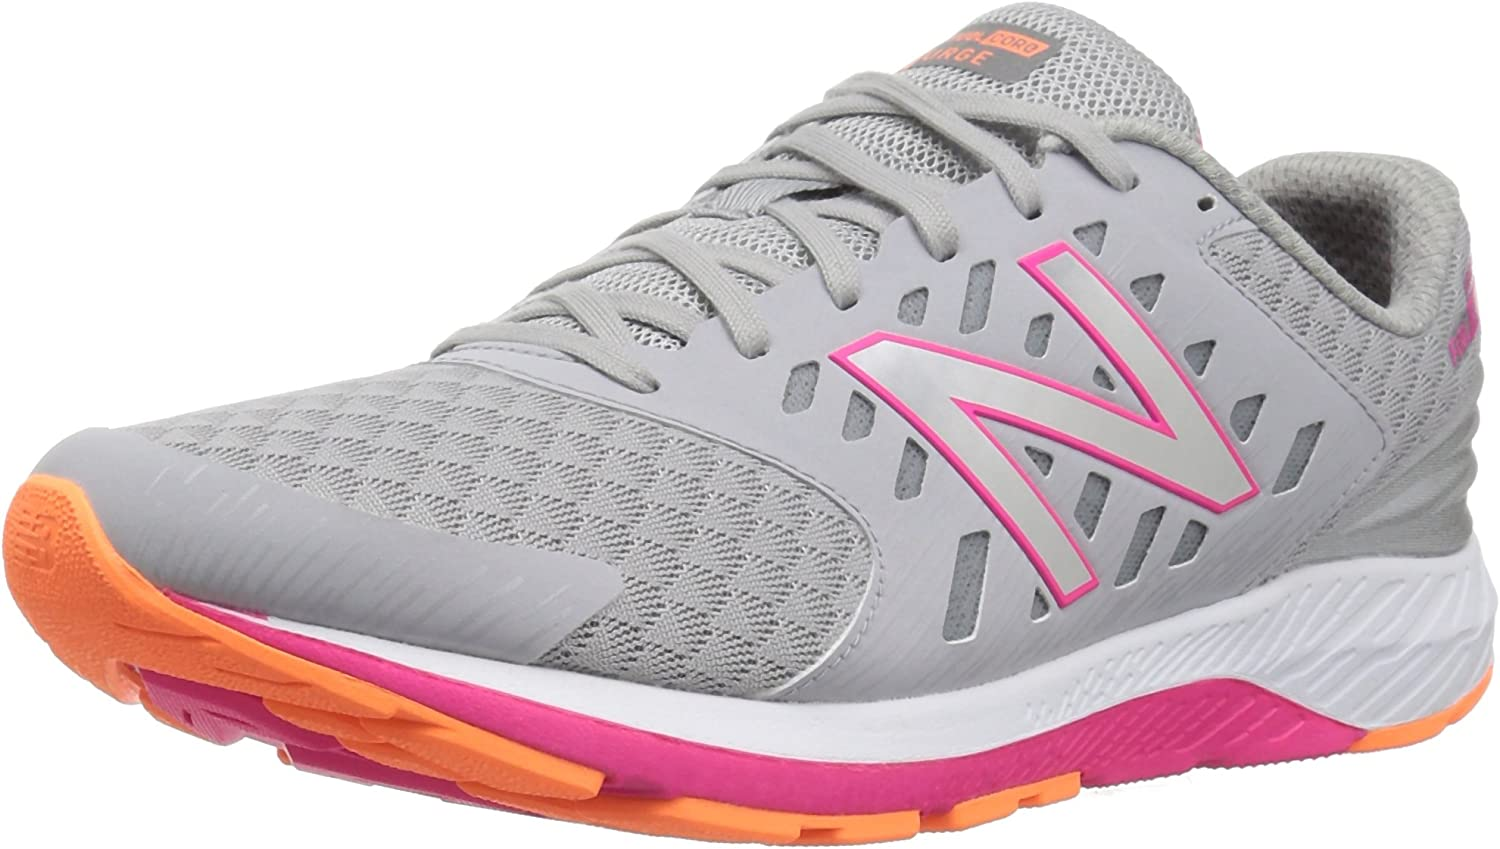 New Balance Women s Urgev2 Running Shoe